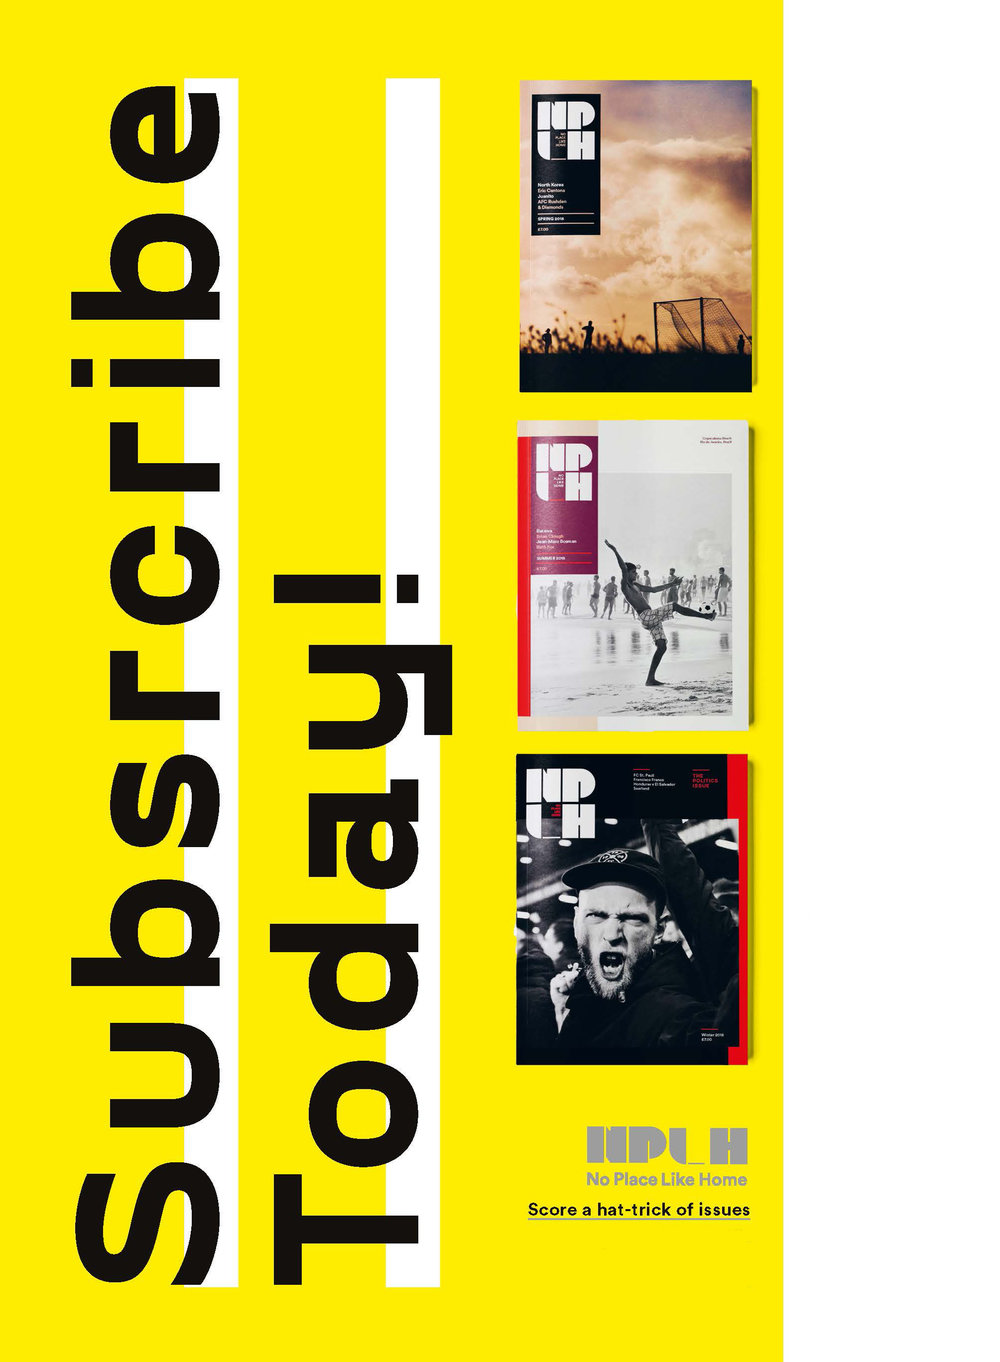 SUBSCRIBE TO THREE ISSUES OF NPLH.